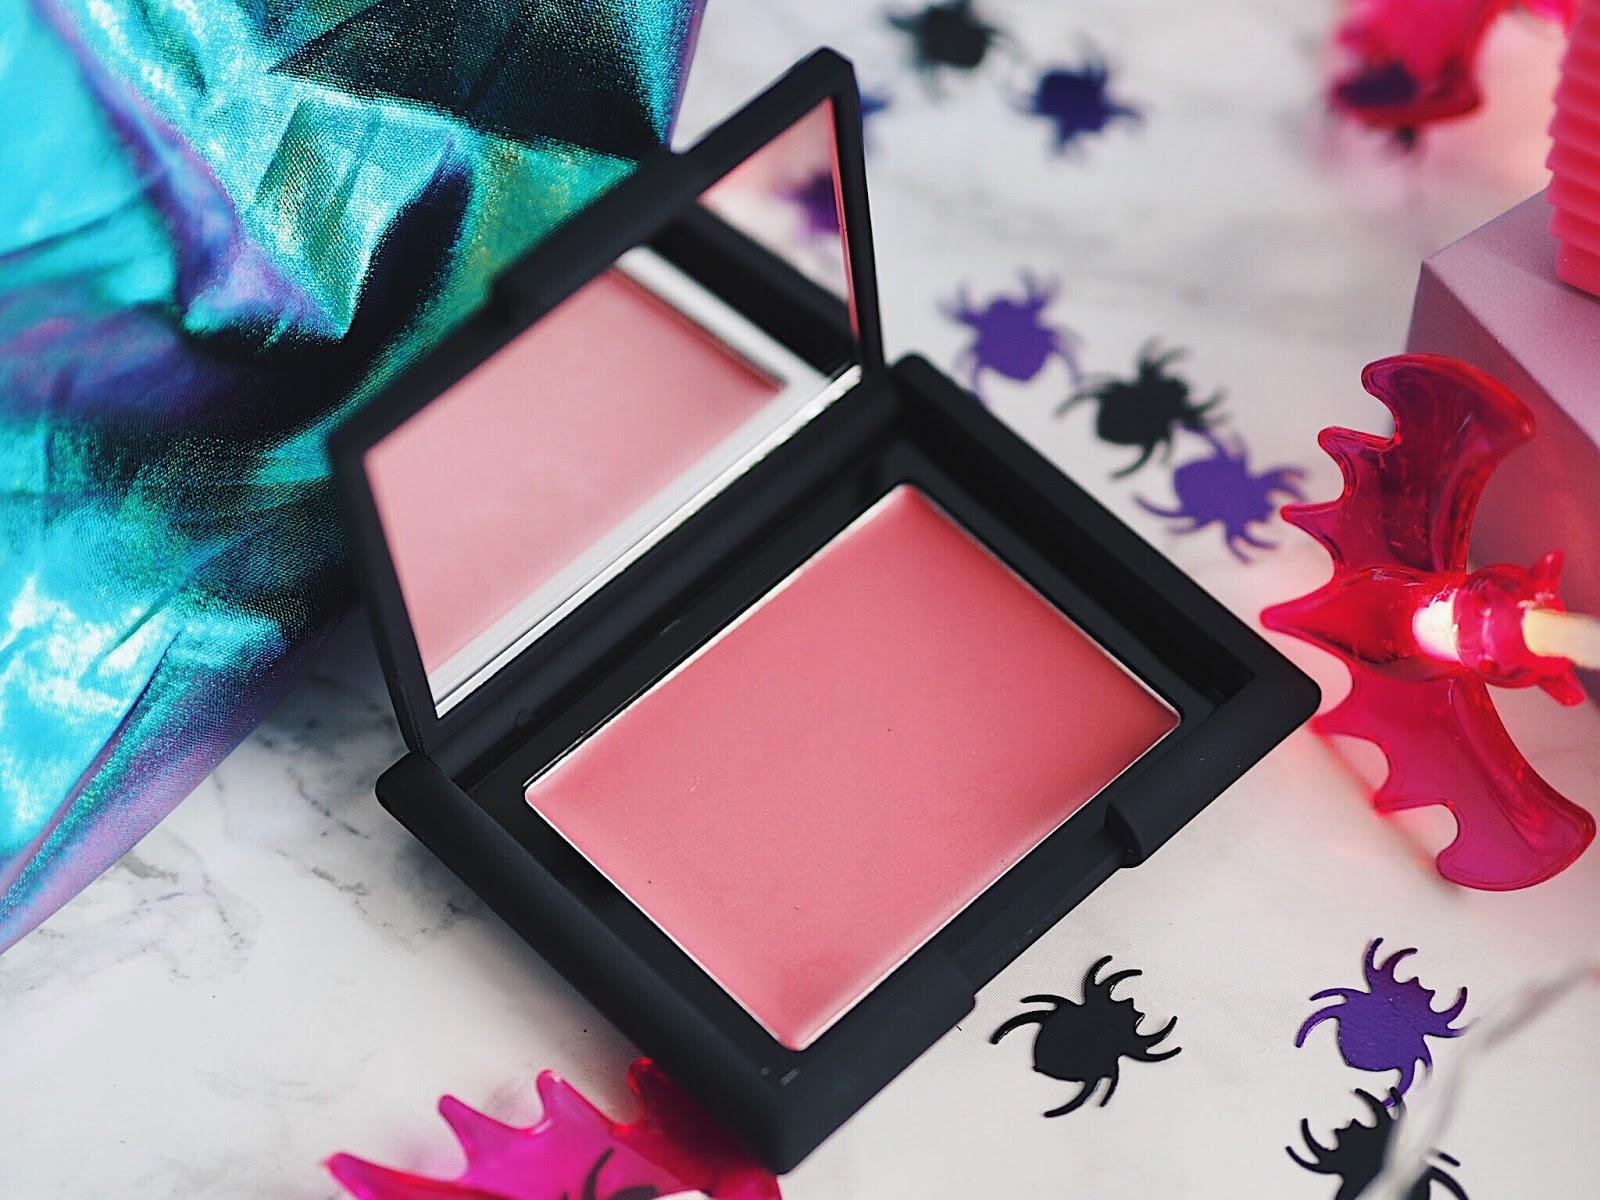 Sleek Makeup Crème to Powder Blush in Amaryllis